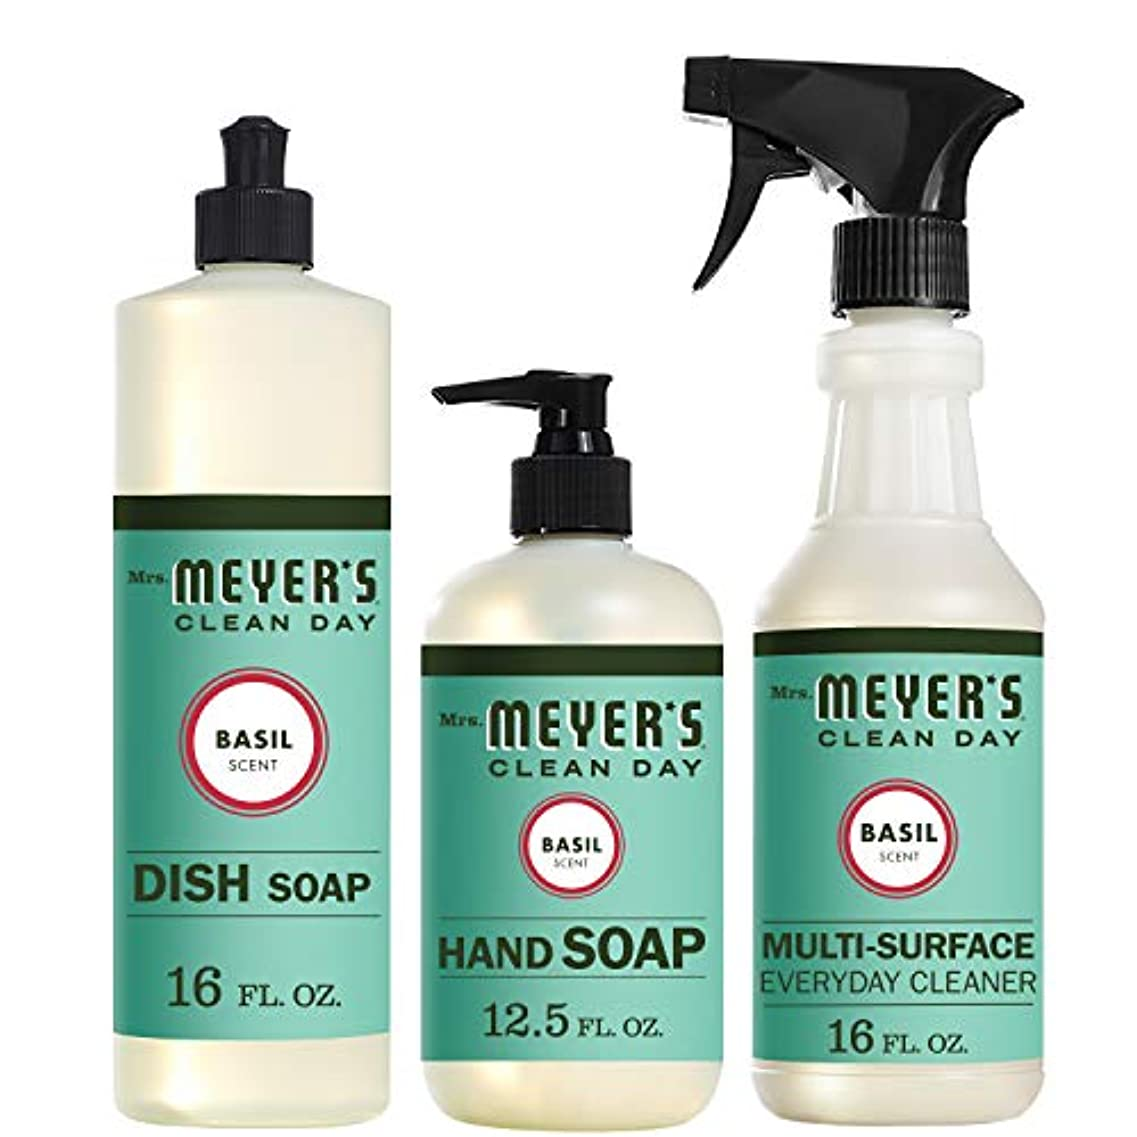 Mrs。Meyers Clean Dayキッチン基本セット、バジル、Includes : Dish Soap (16 fl oz)、Hand Soap (12.5オンス、日常Multi - Surface Cleaner...